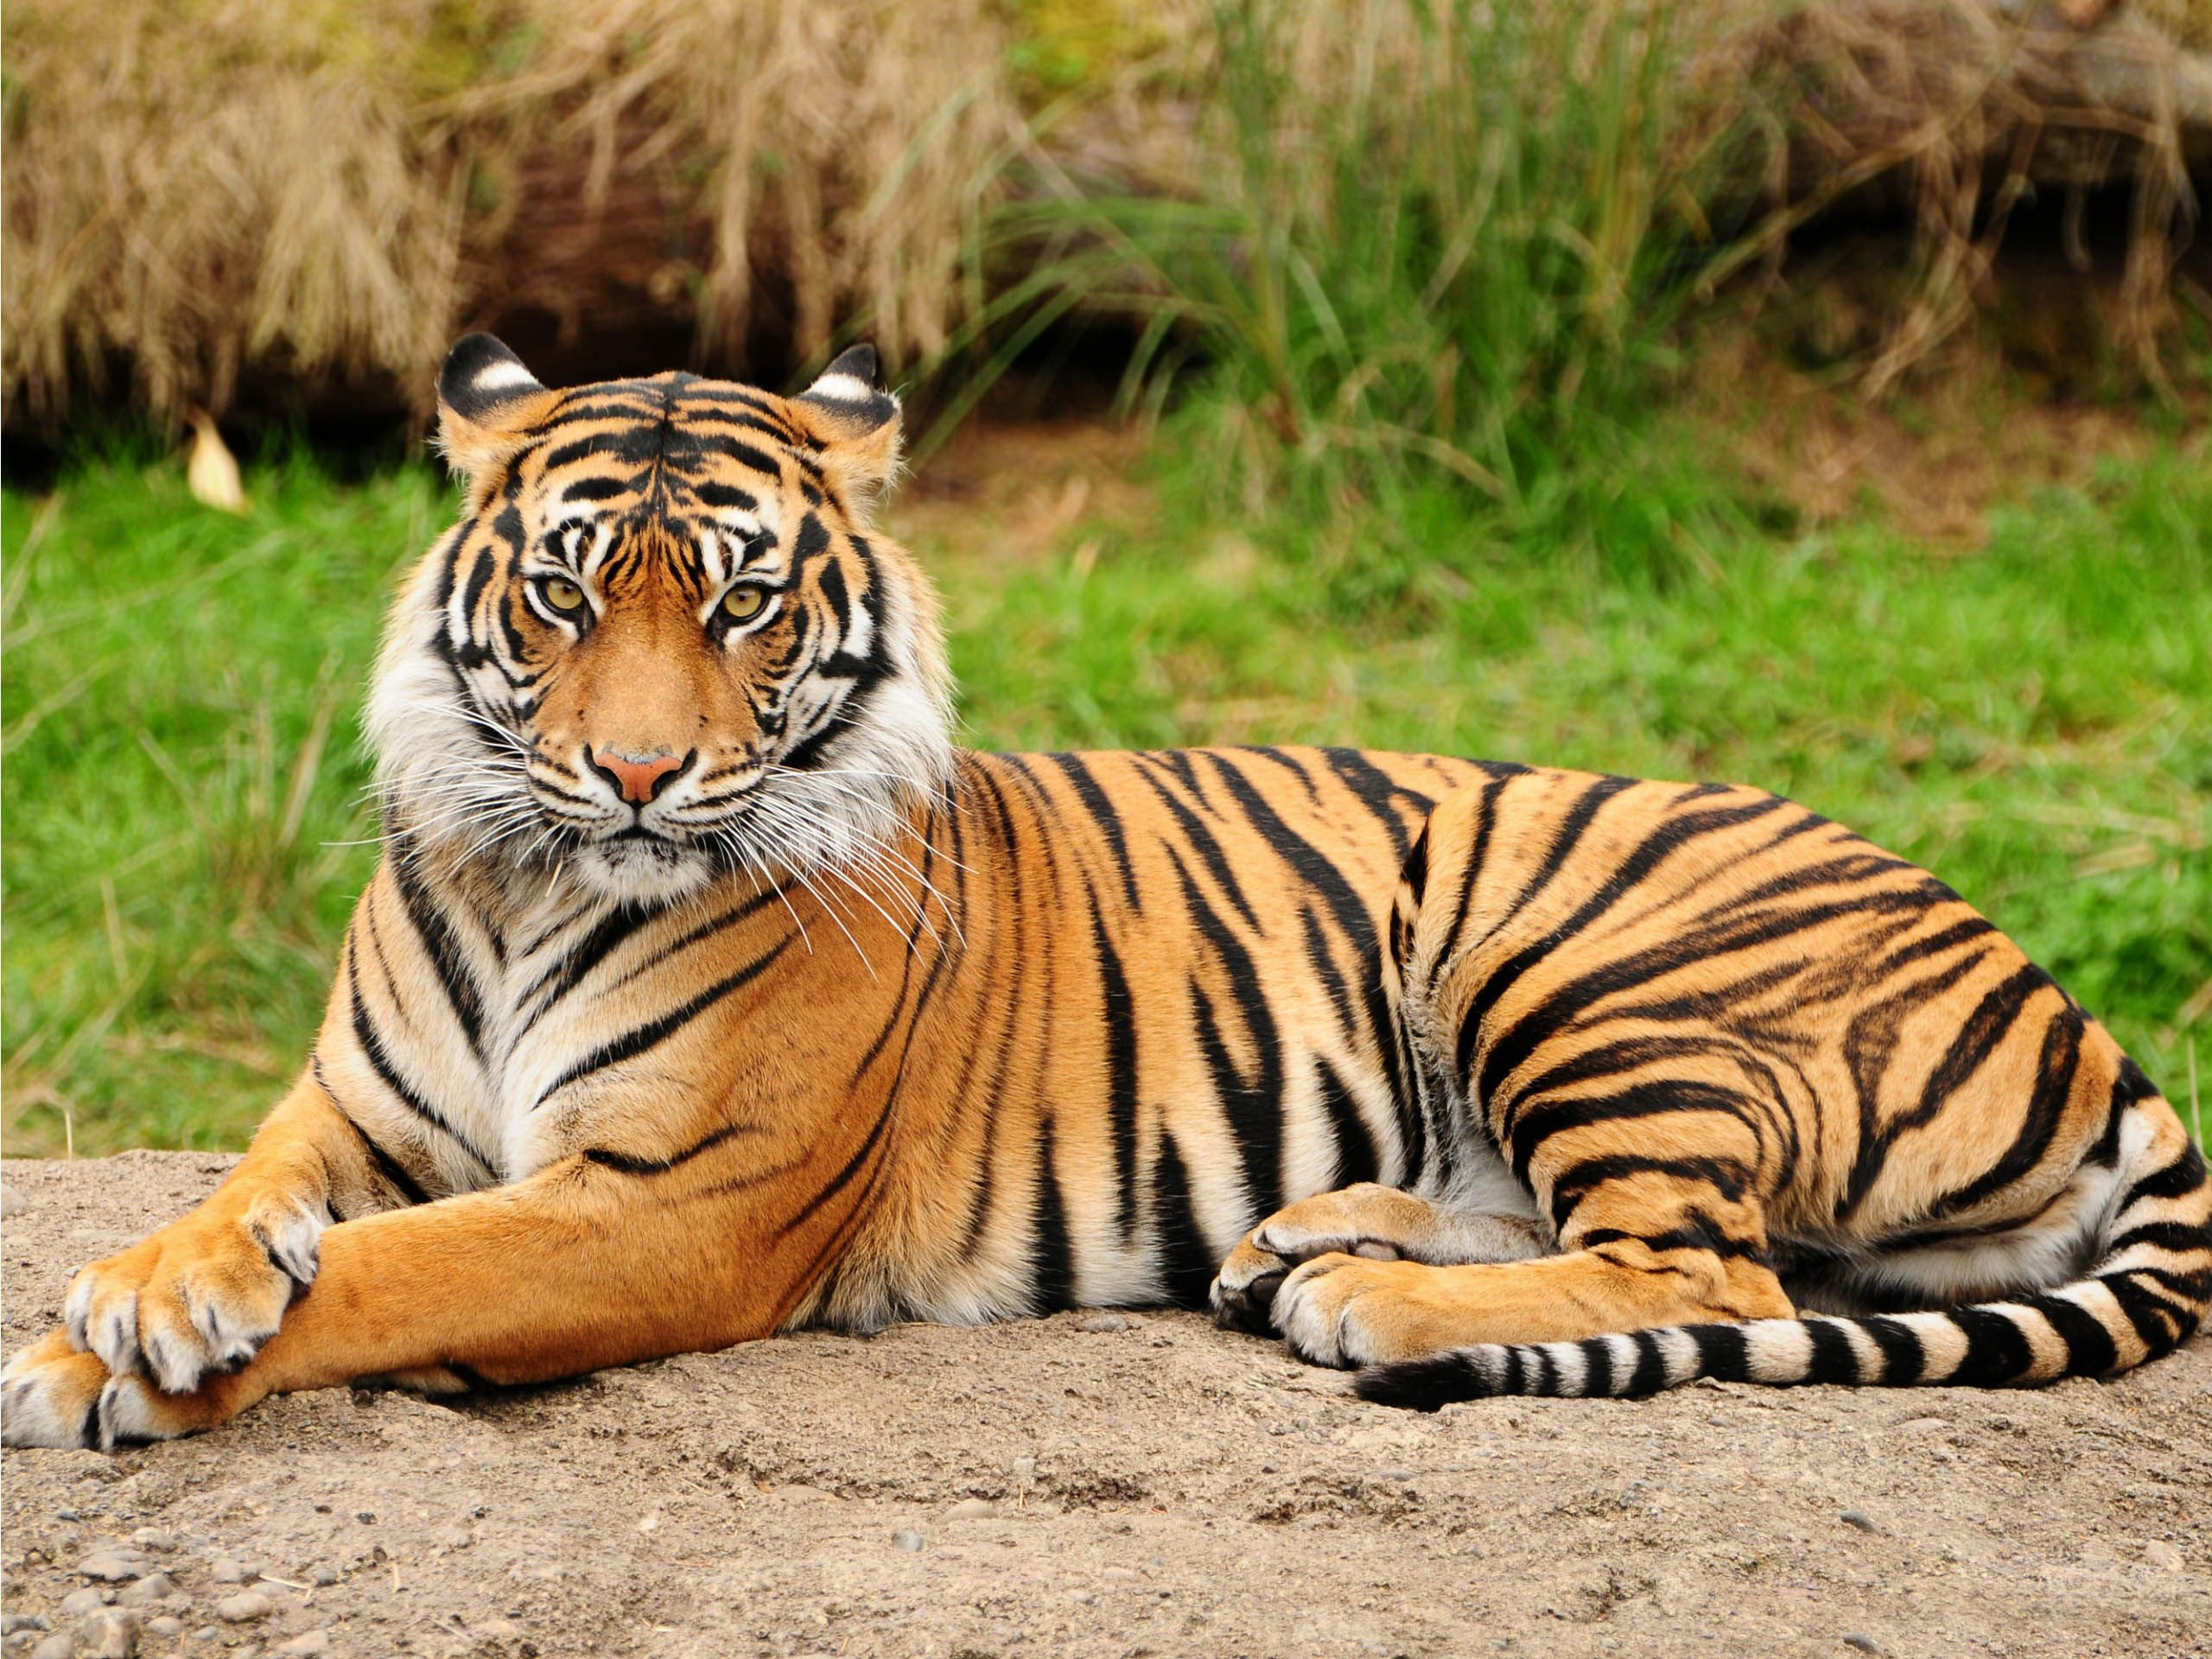 low priced f730a 4c4b3 WWF reports increase in tiger population for the first time in decades.